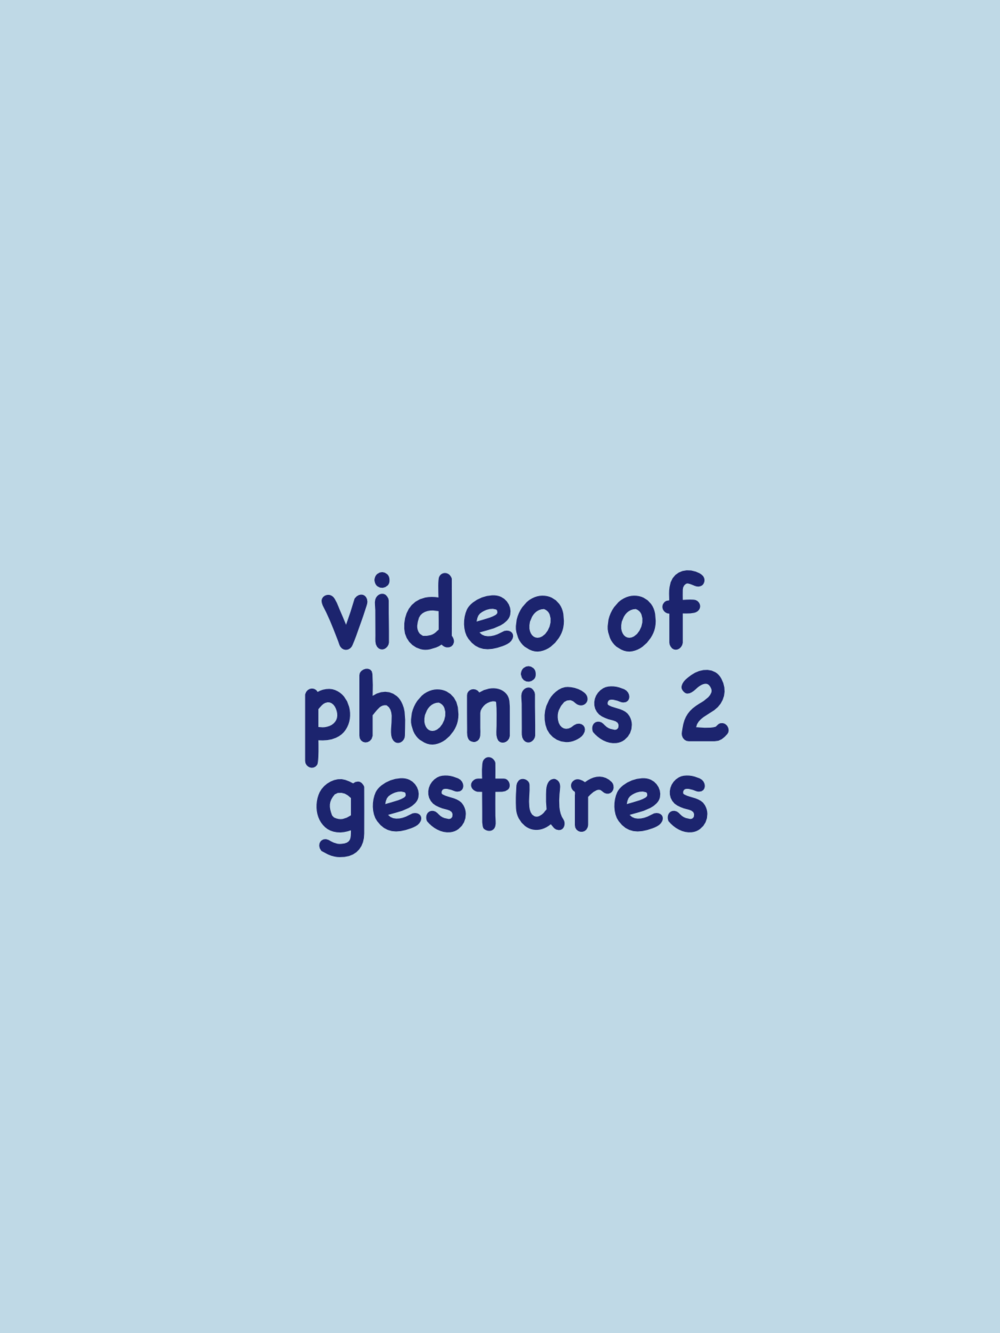 Gesture Videos Fabulous Phonics 2